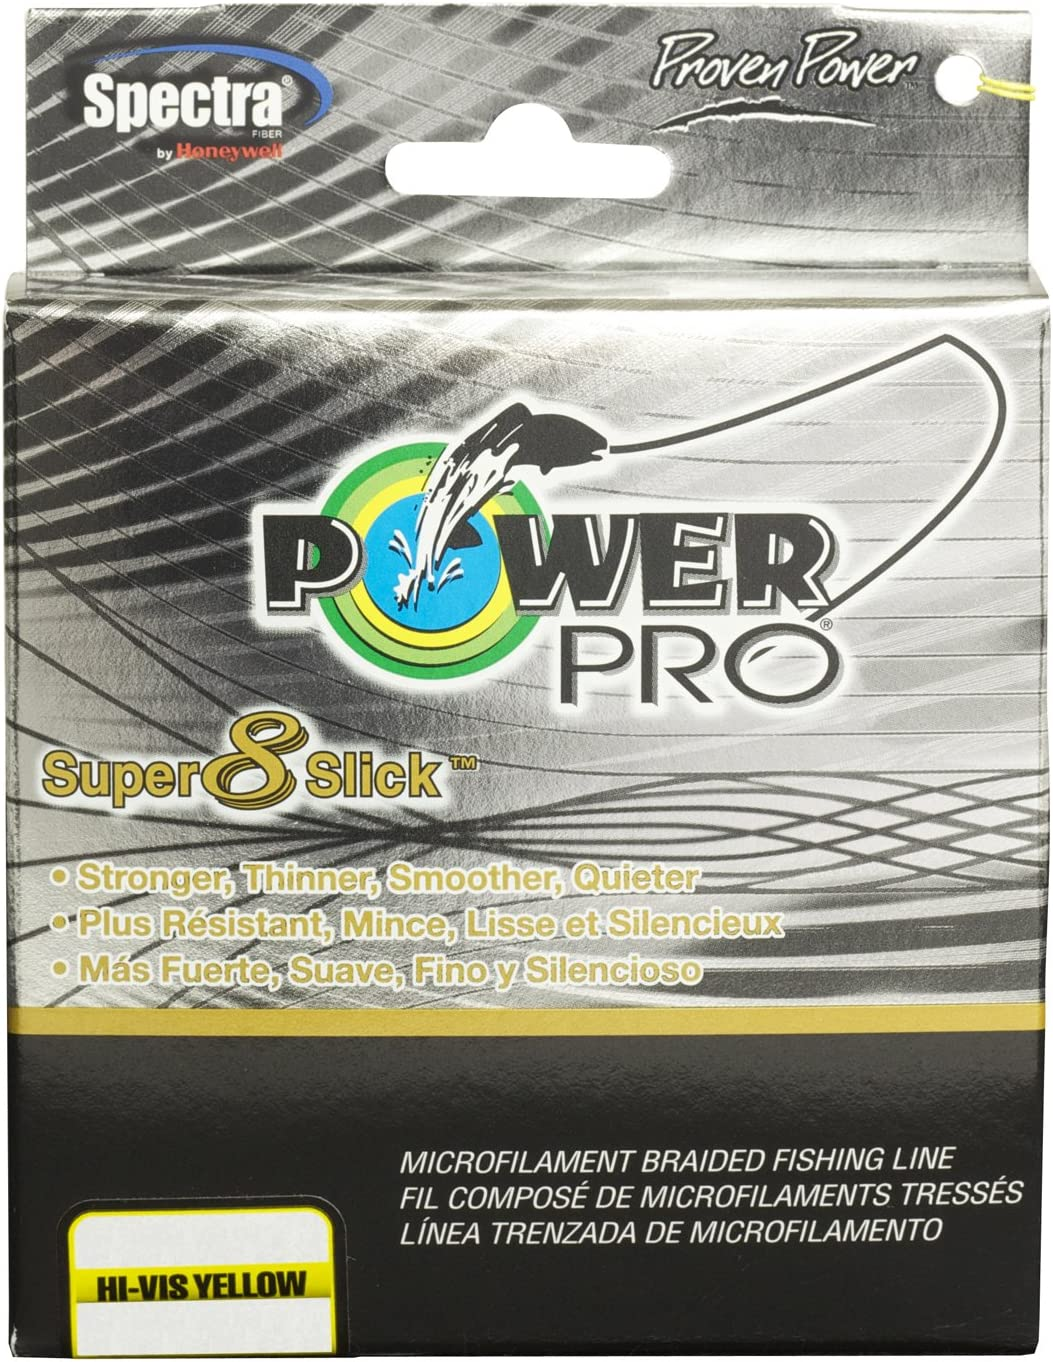 Power Pro Spectra Fiber Braided Fishing Line, Hi-Vis Yellow, 1500YD 150LB